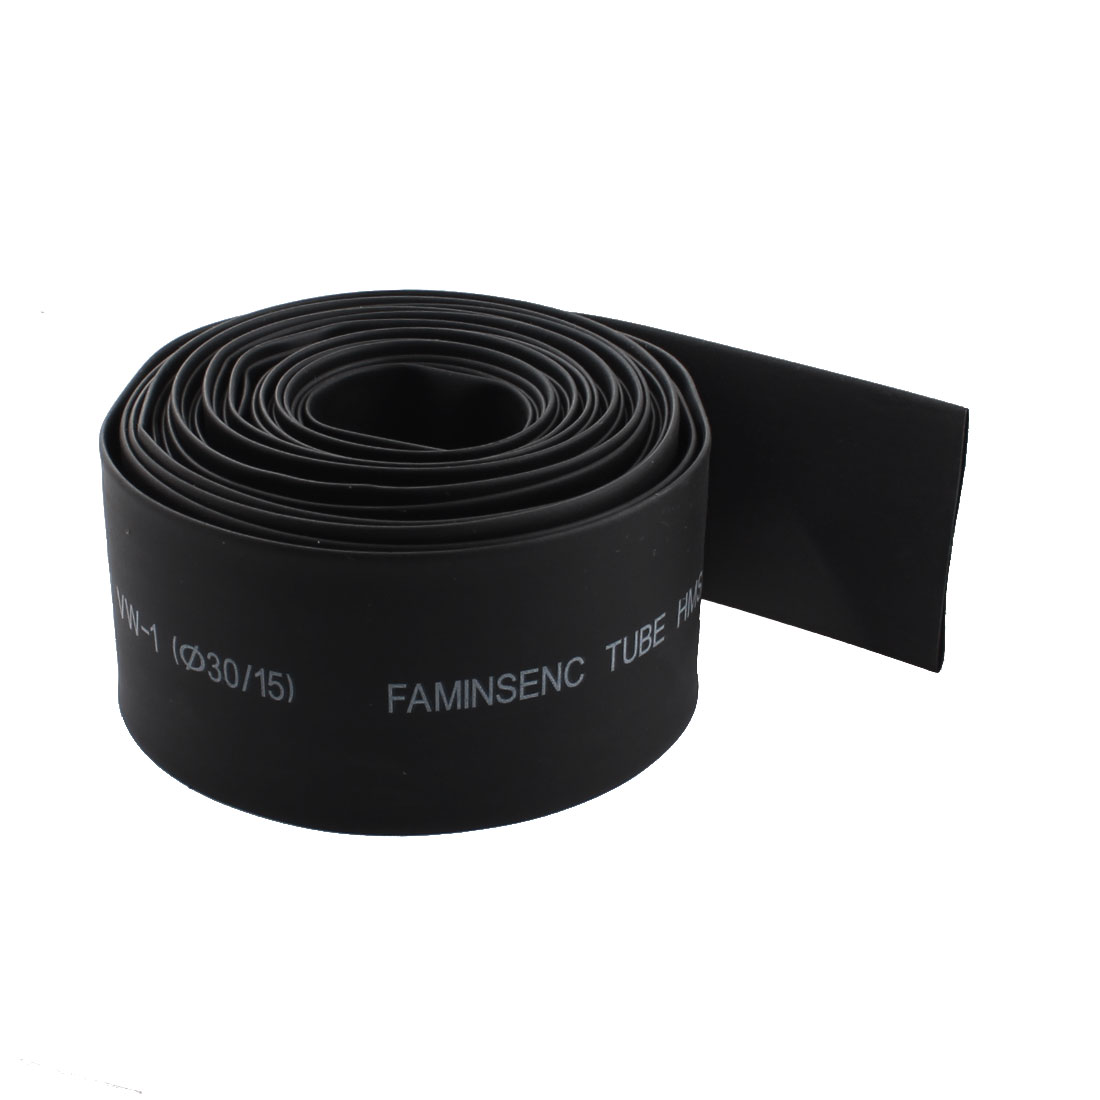 5M 16ft Long 600V 125C 15mm 30mm Shrink Ratio 2/1 Black Polyolefin Heat Heating Shrinkable Tubing Shrink Tube